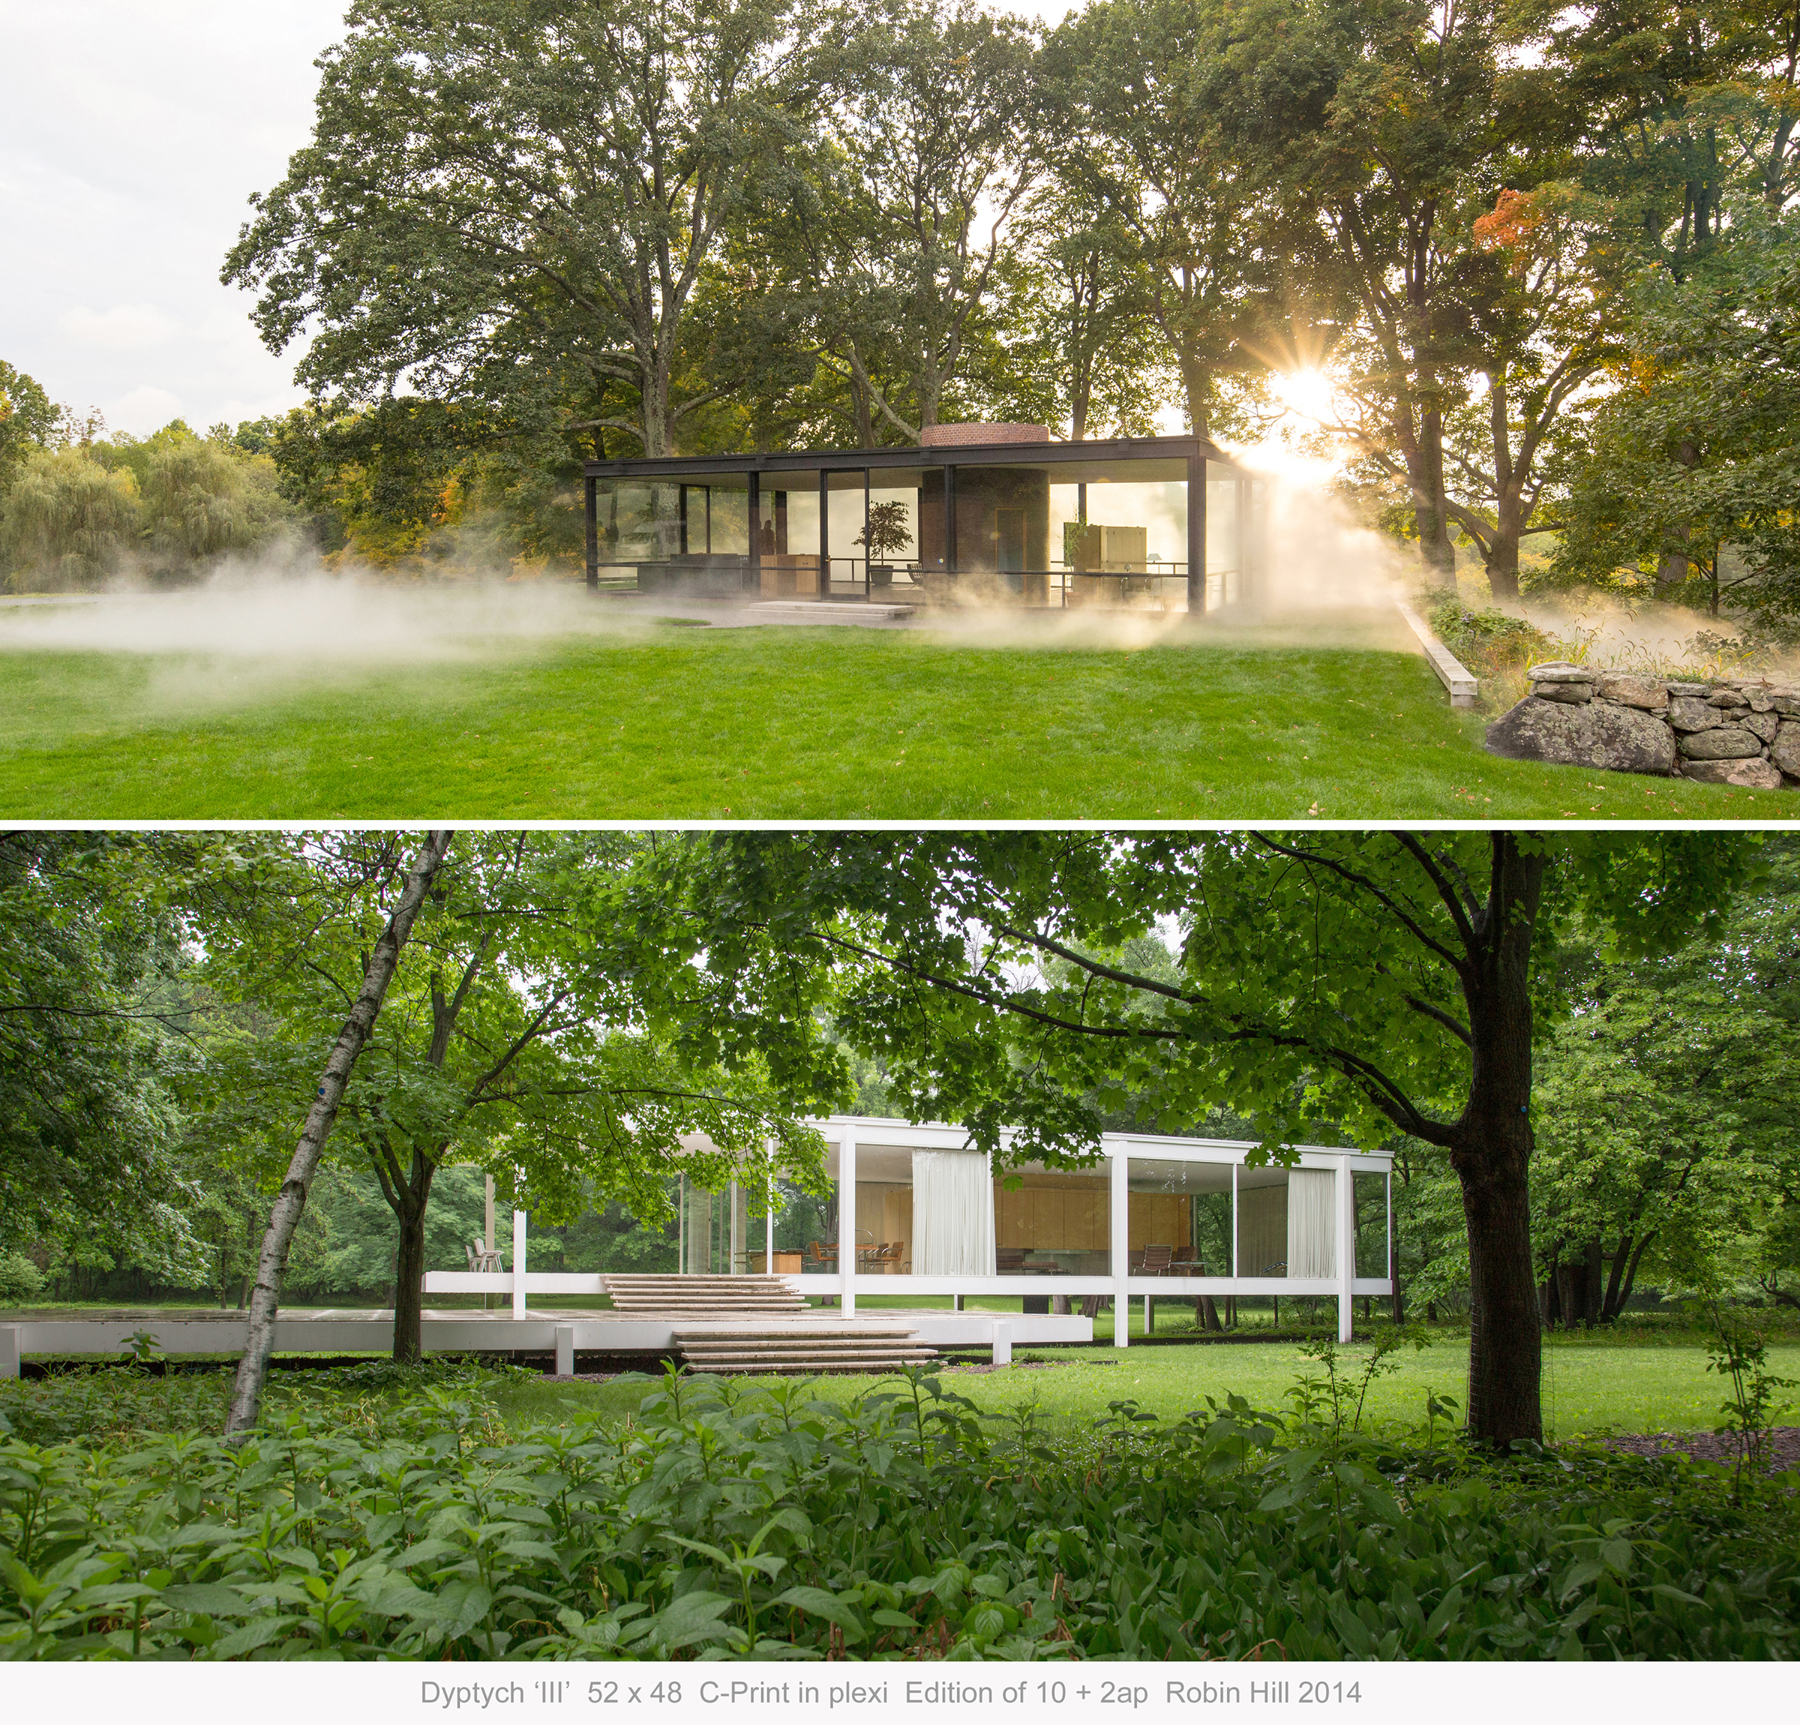 Exhibition side by side philip johnson 39 s glass house and for Side by side homes